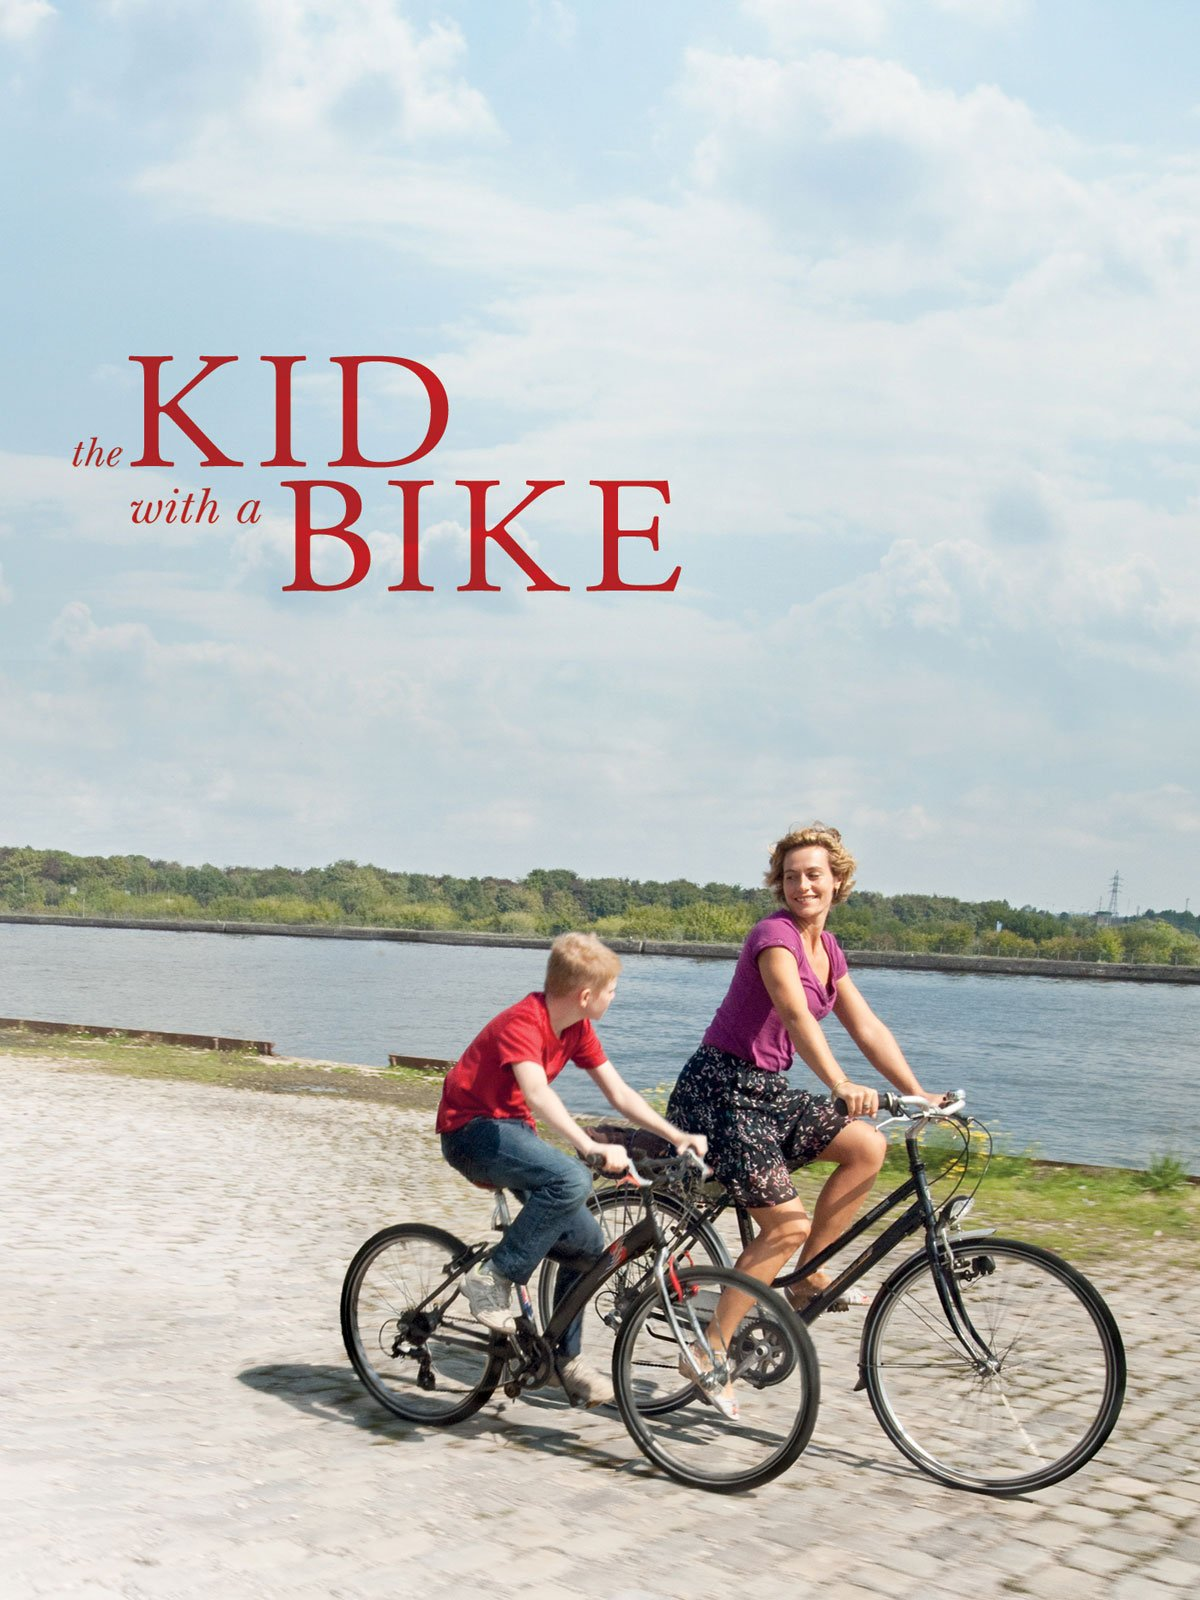 Foreign Cinema Series: The Kid With a Bike (Belgium, 2011; PG-13)